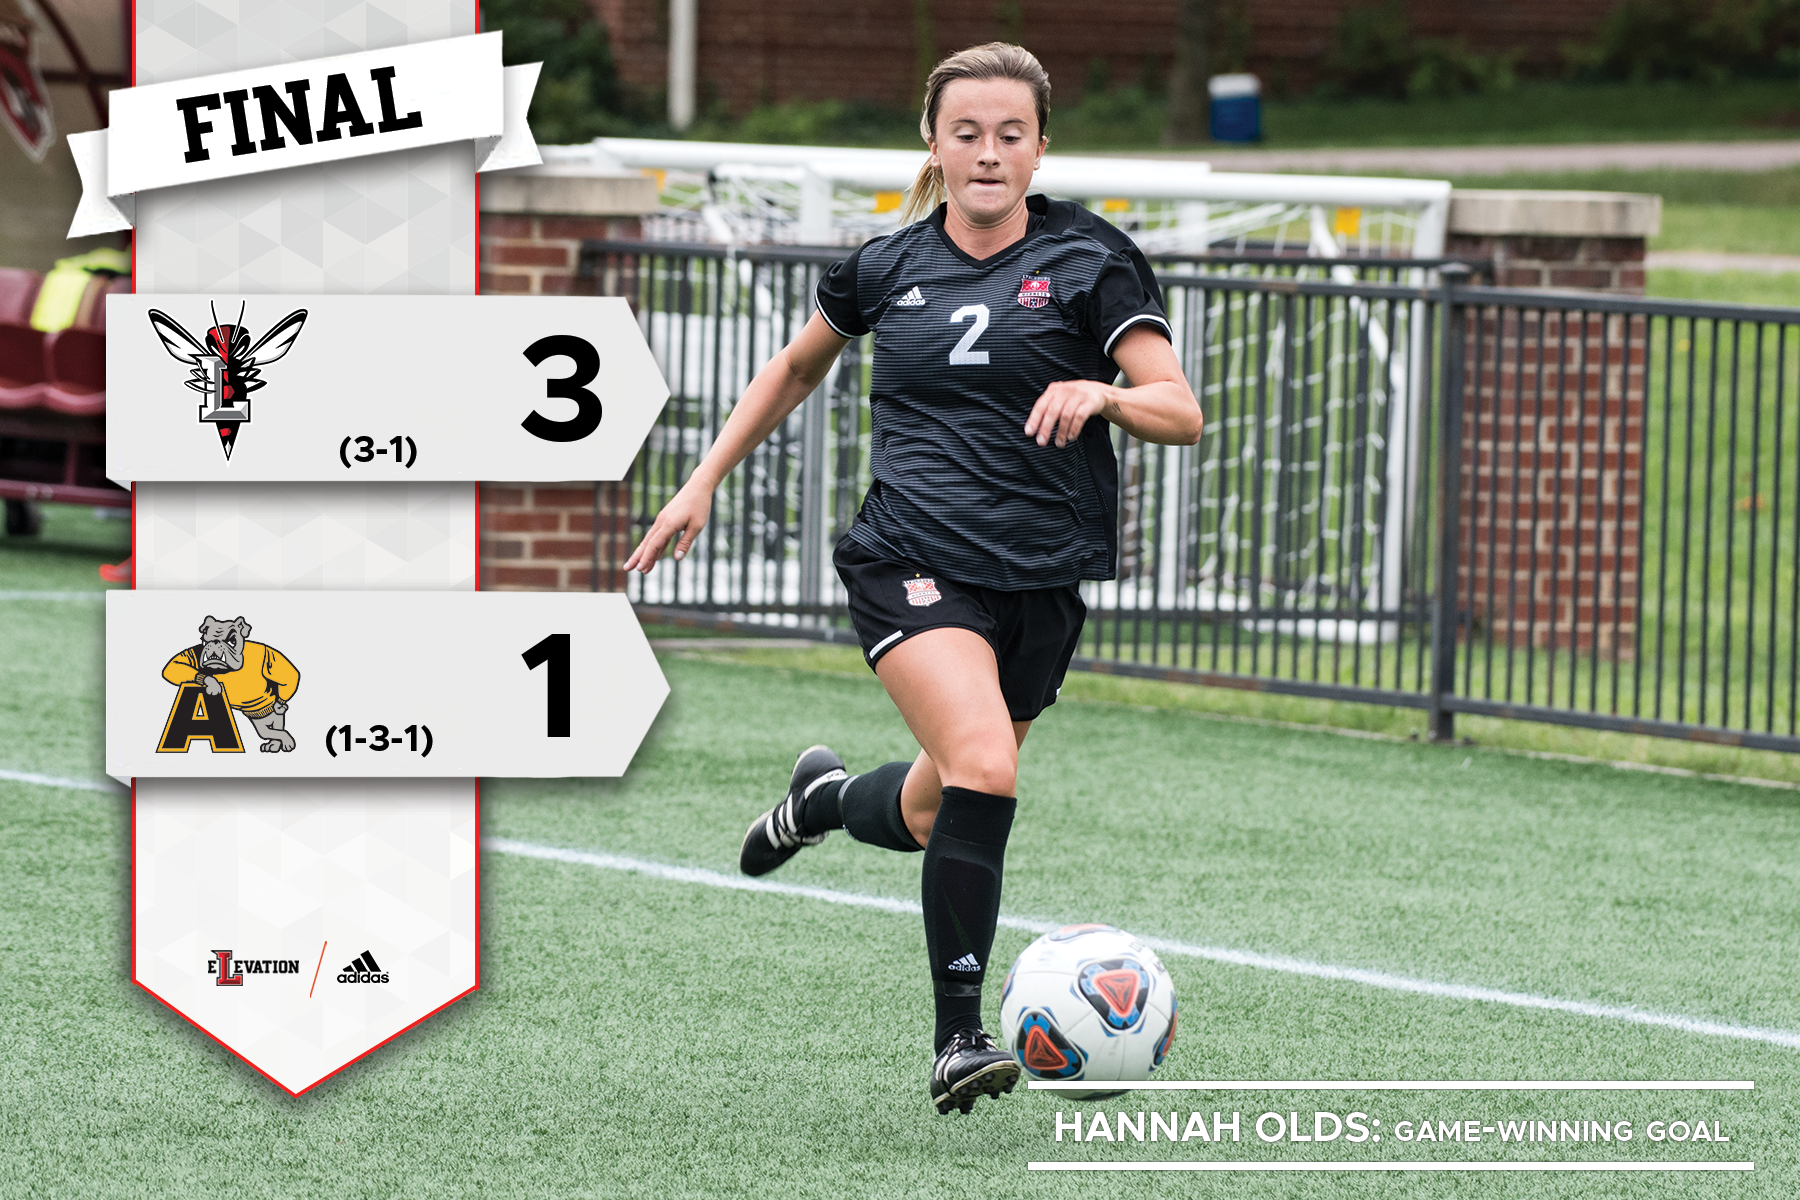 Hannah Olds dribbles the soccer ball. Graphic showing 3-1 final score as Lynchburg defeats Adrian.